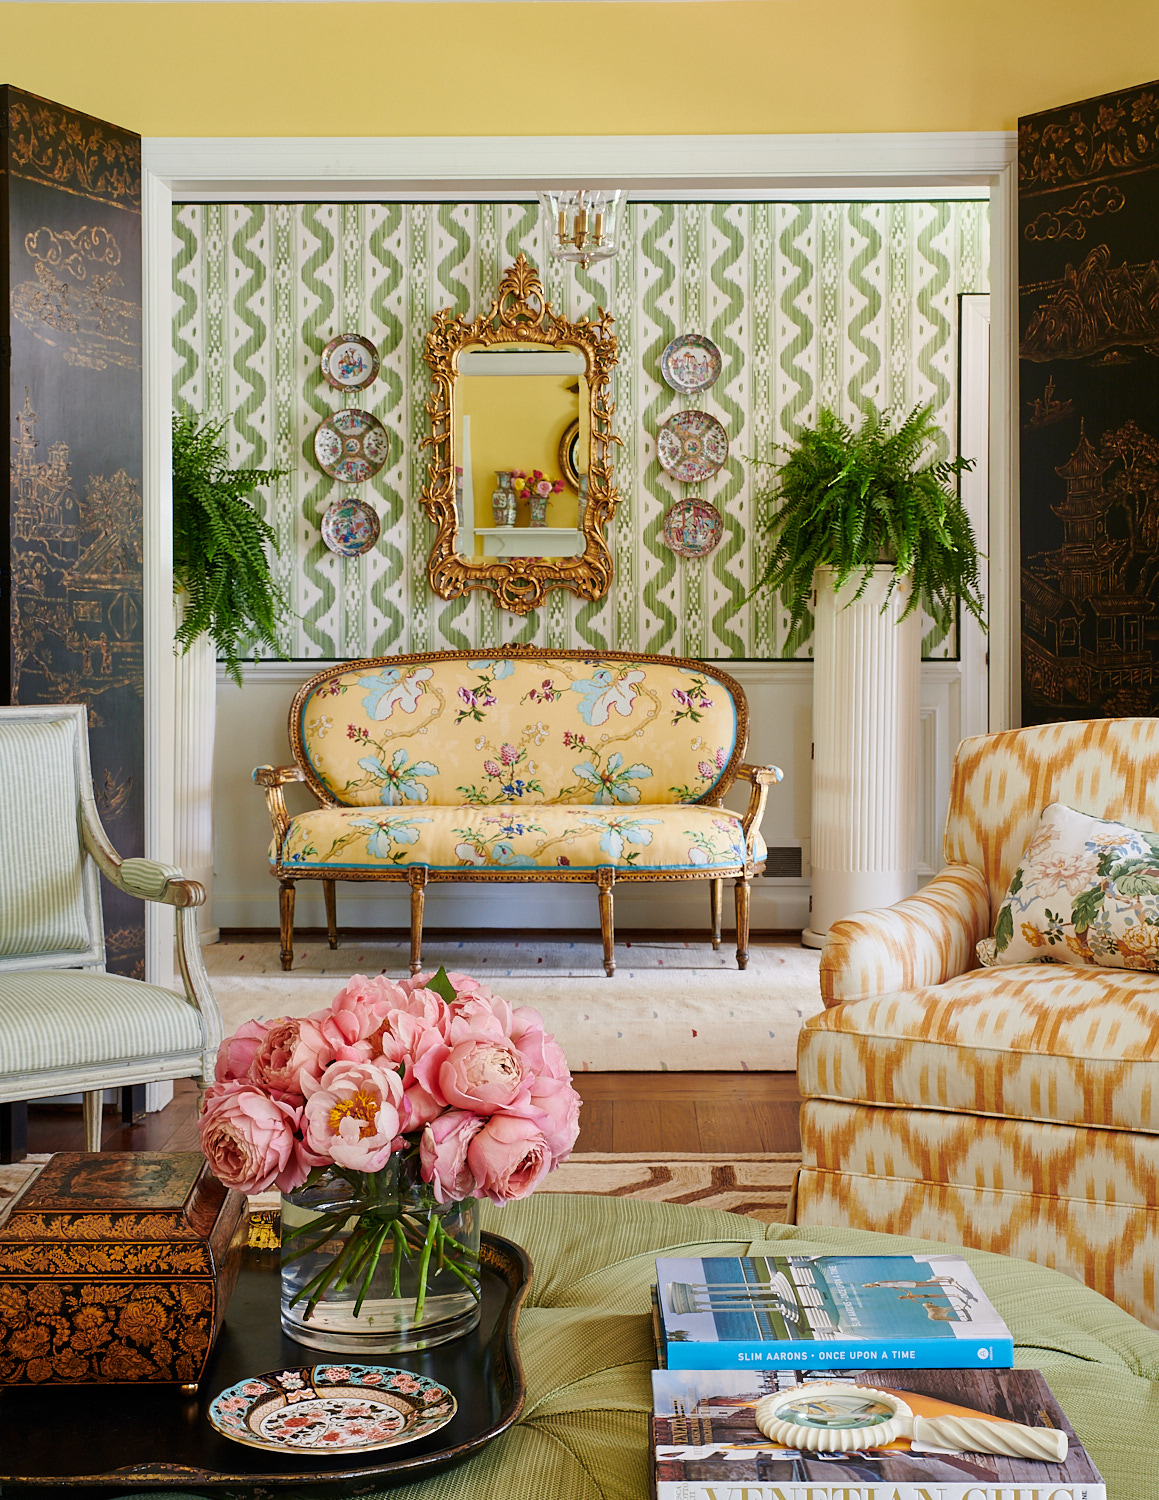 Vibrant floral settee with other upholstered chairs